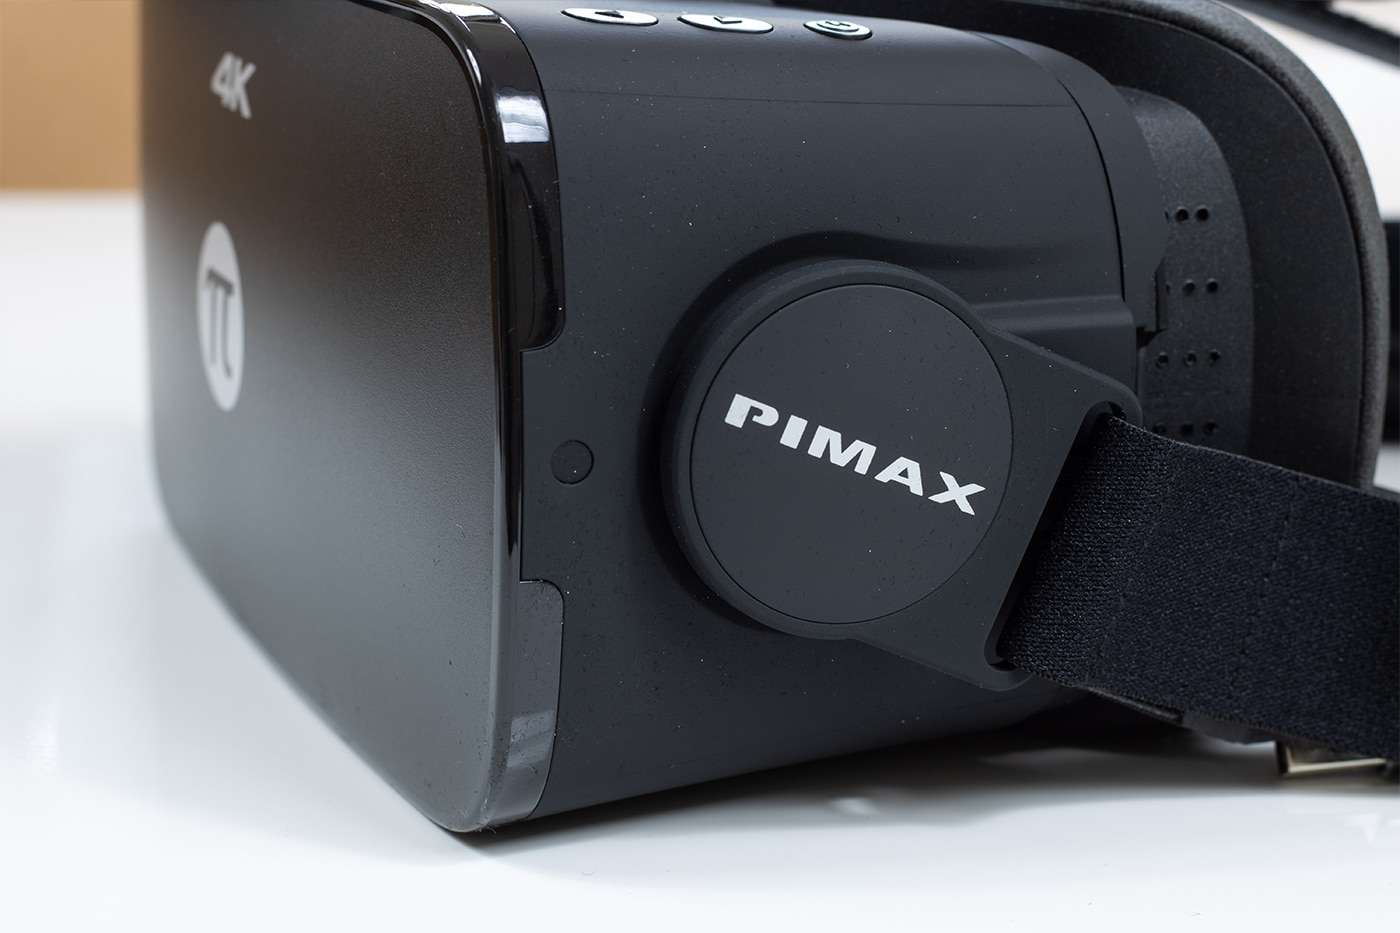 Pimax 4K VR Headset, Side View